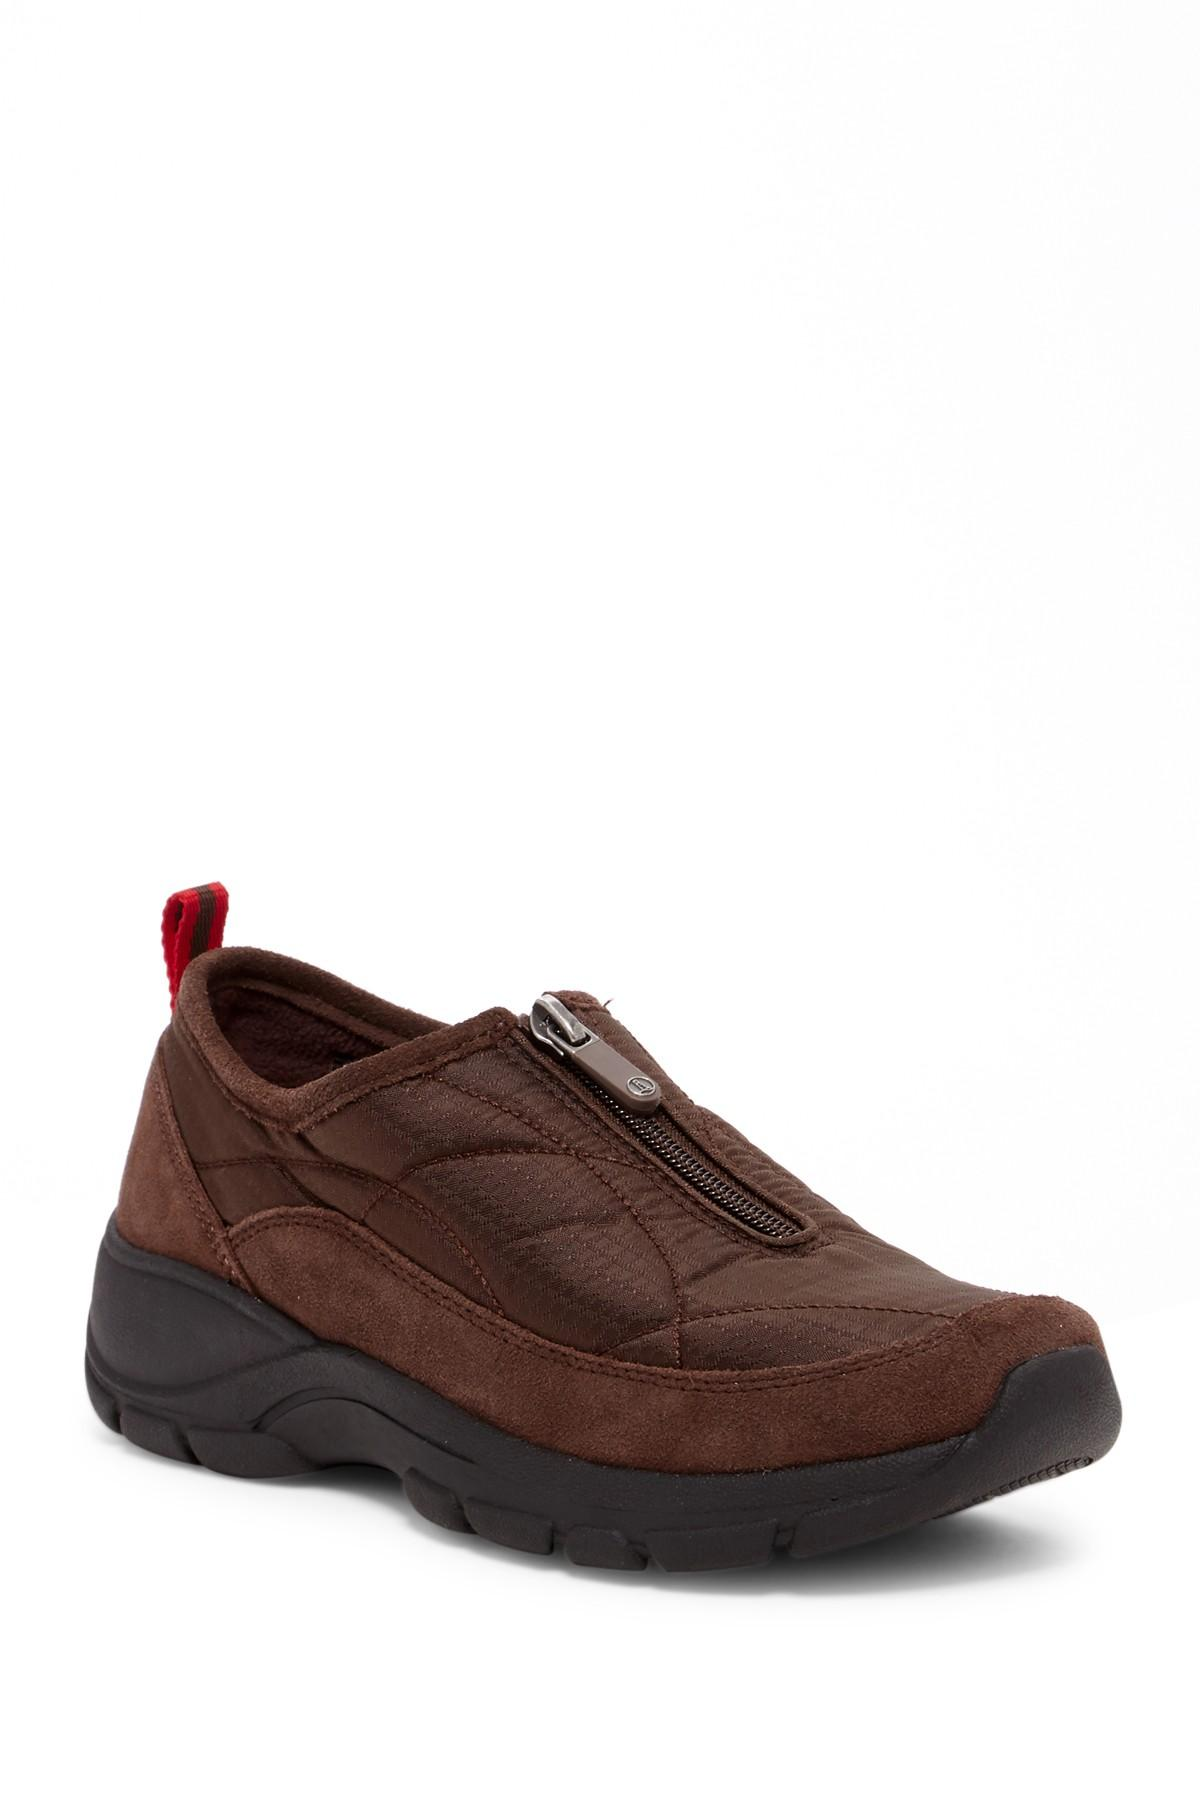 Lyst Lands End All Weather Zip Shoe In Brown For Men